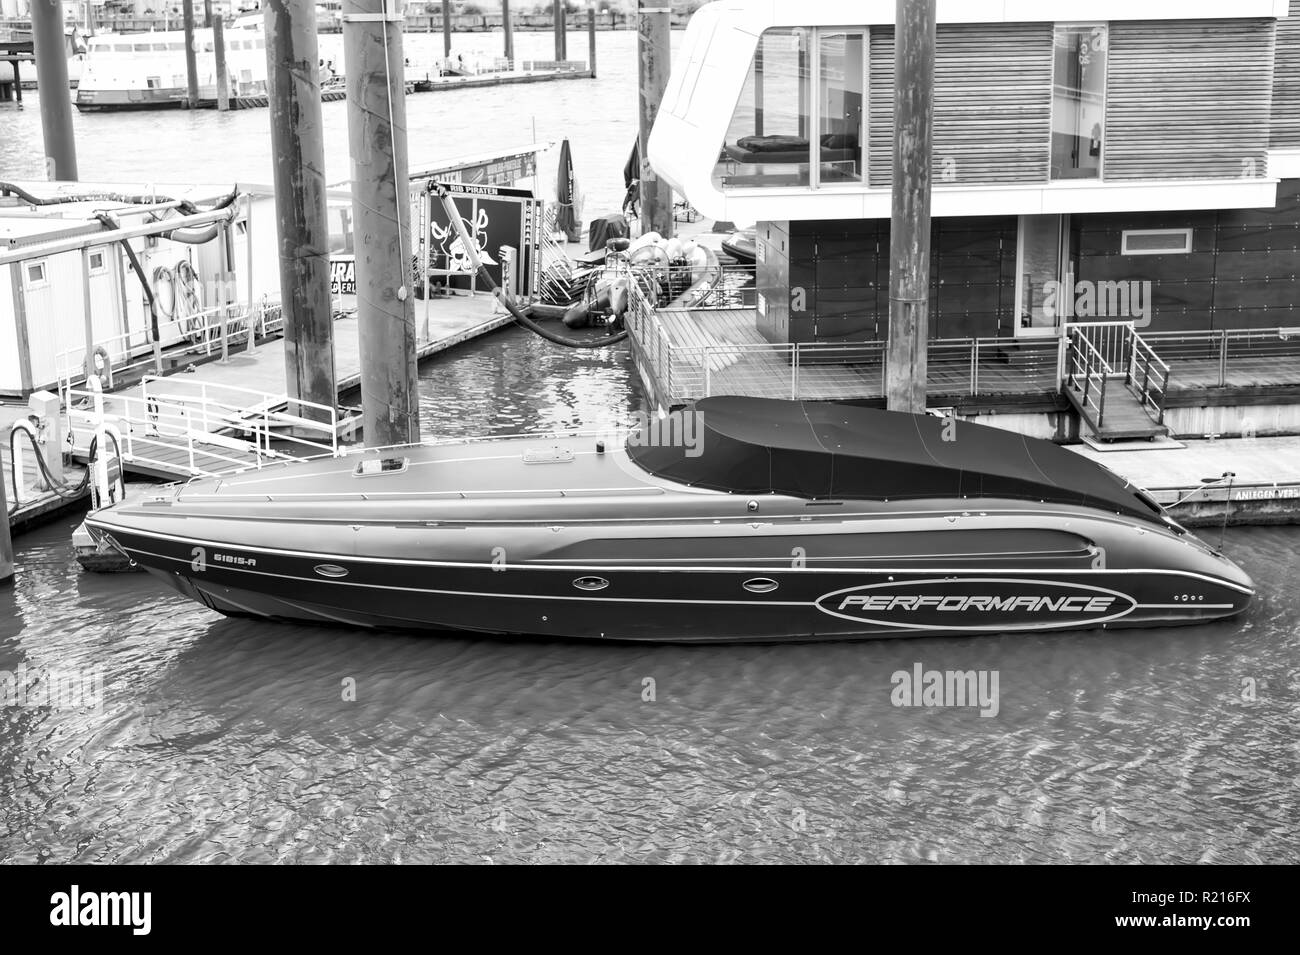 Hamburg, Germany - September 07, 2017: motor boat at pier in Elbe harbor. Water transport transportation. Adventure, discovery journey. Traveling travelling, travel trip, wanderlust vacation - Stock Image